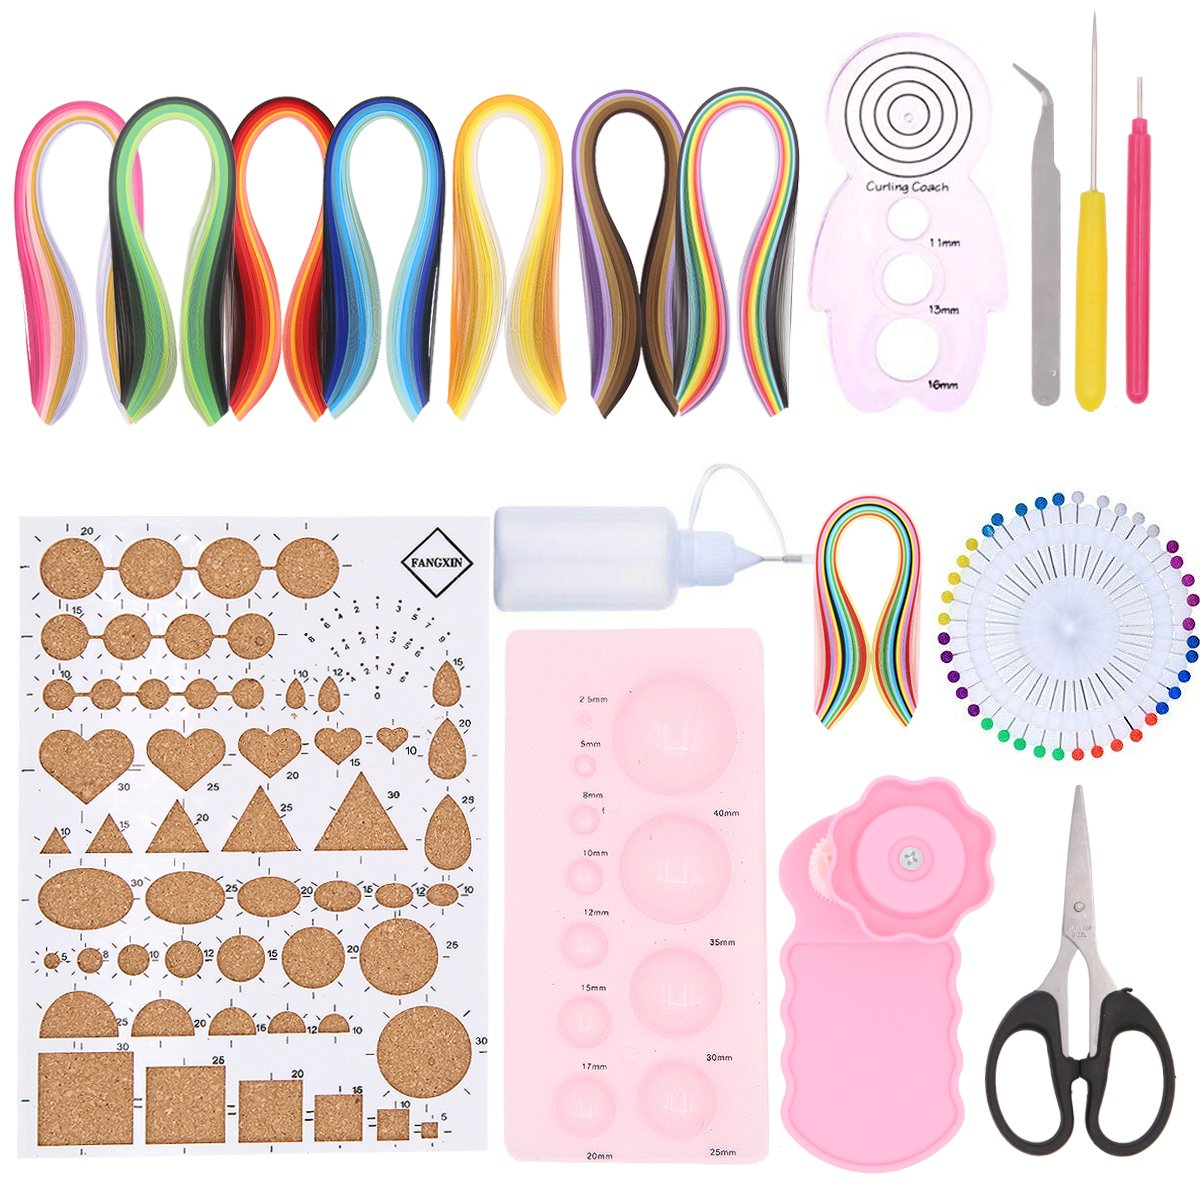 19 in 1 Paper Quilling Kit with 960 Strips 3mm Paper and 11 Tools Supplies,Crimper Comb Ruler Pins Border Buddy Set for DIY Quilling Art by Apol